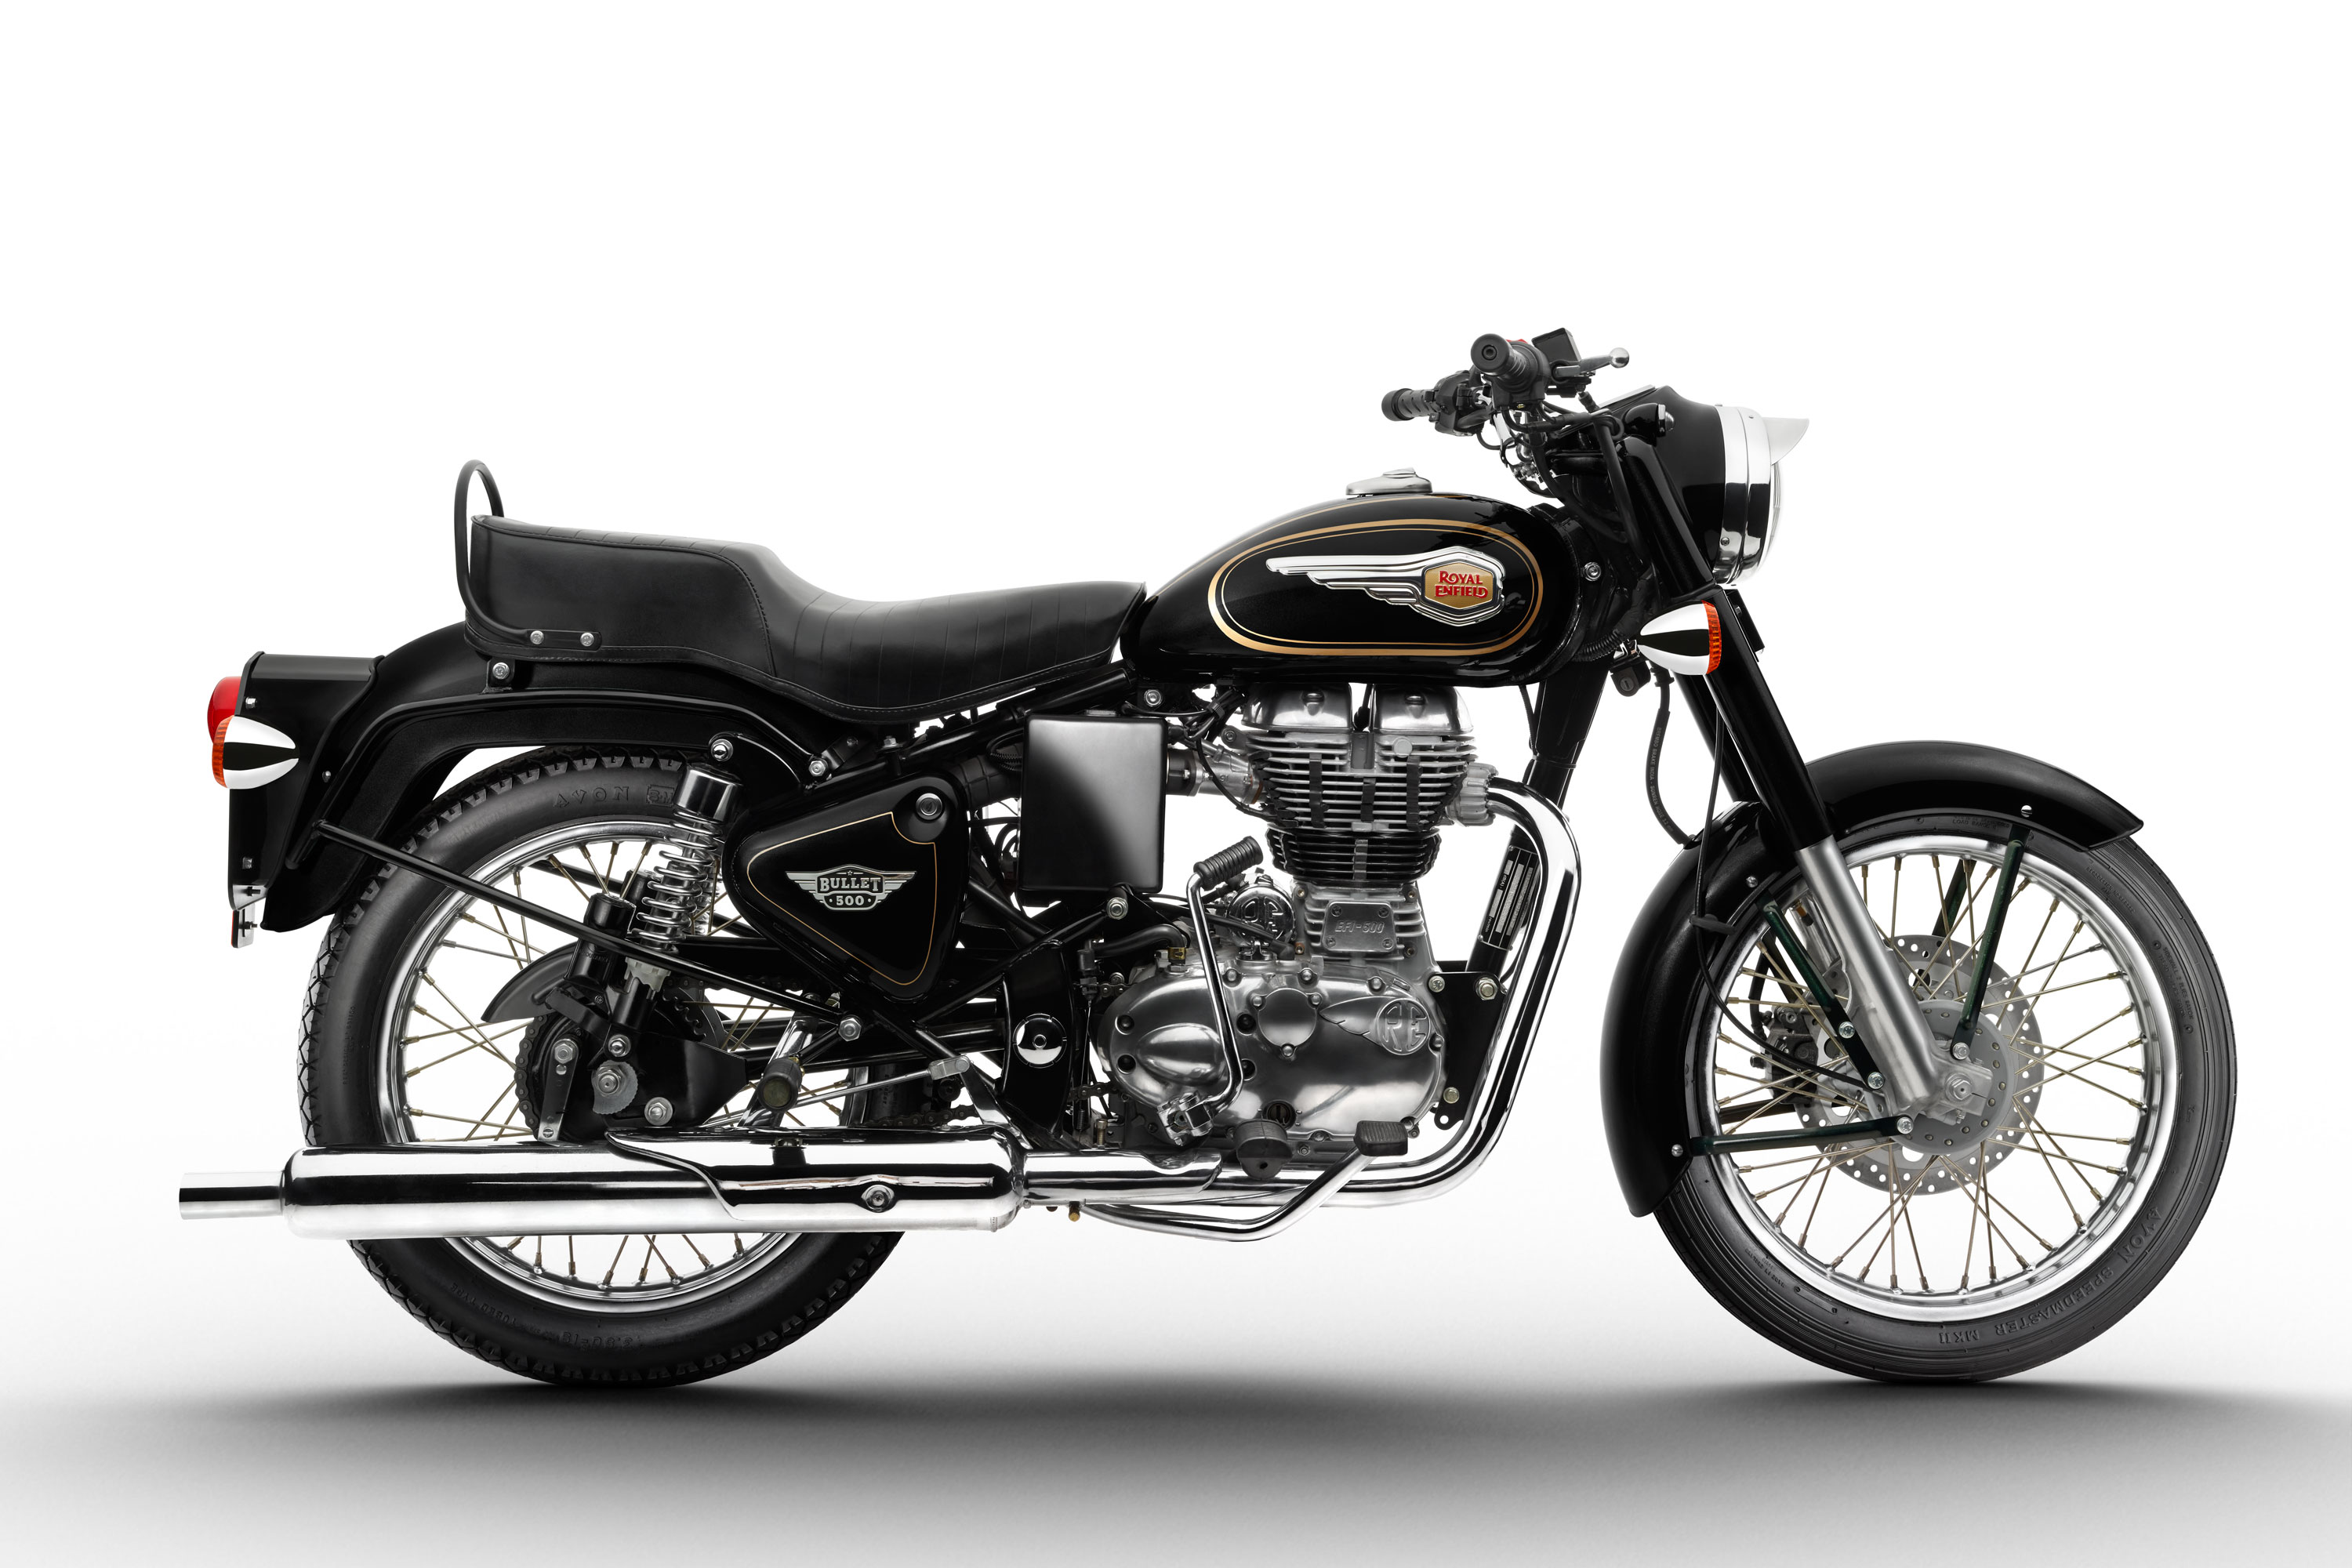 royalenfield_bullet500_black_001